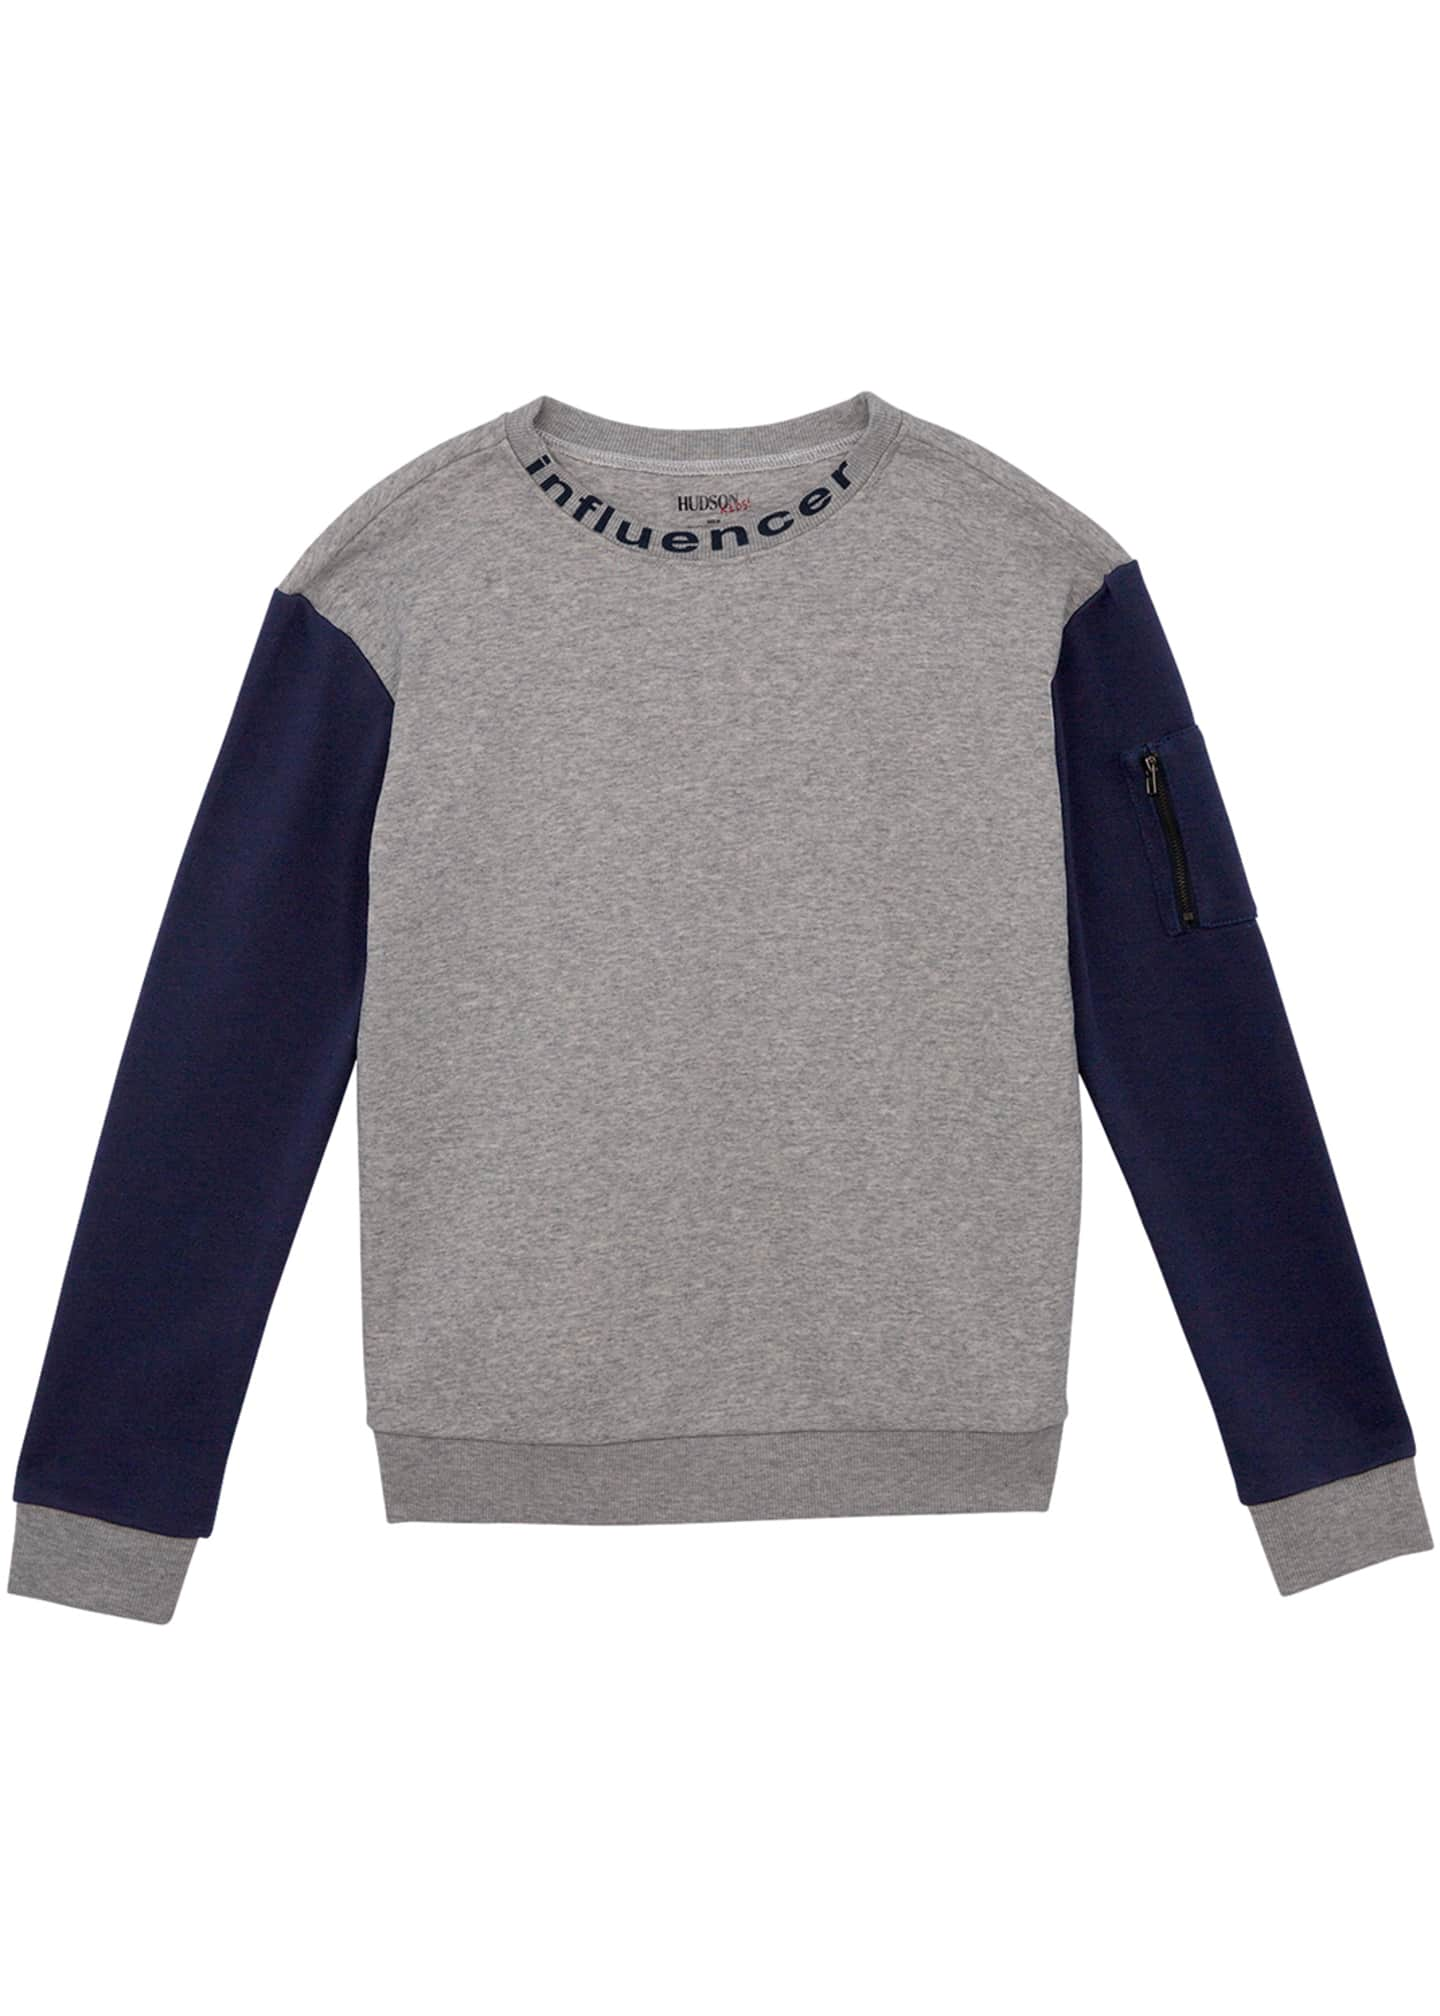 Hudson Boys' French Terry Crewneck Sweatshirt, Size S-XL